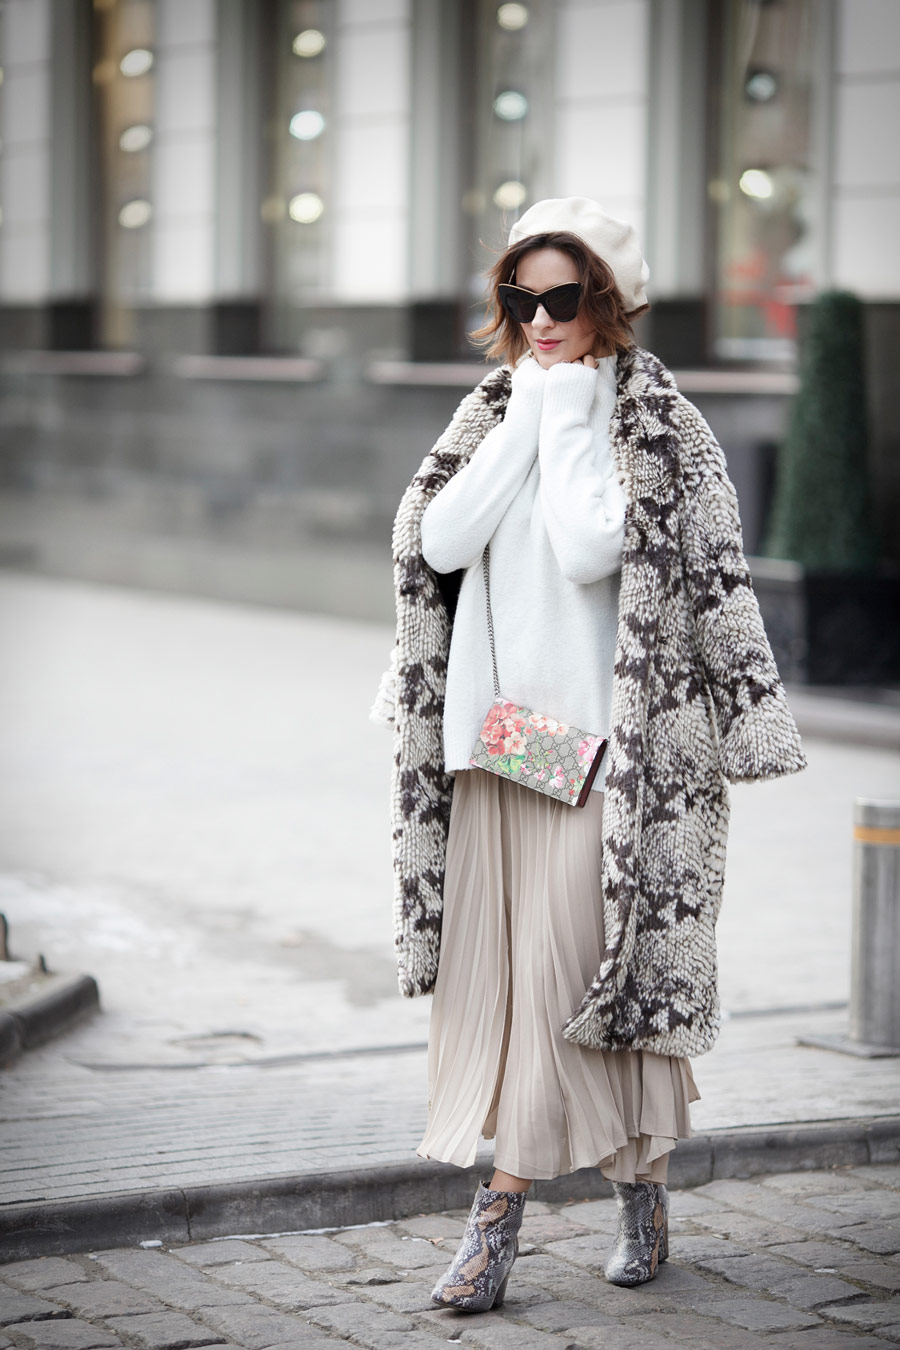 winter outft ideas, fake fur coat outfit, beret outfits, statement boots outfits, gucci blooms bag outfit, Ellena Galant Girl,